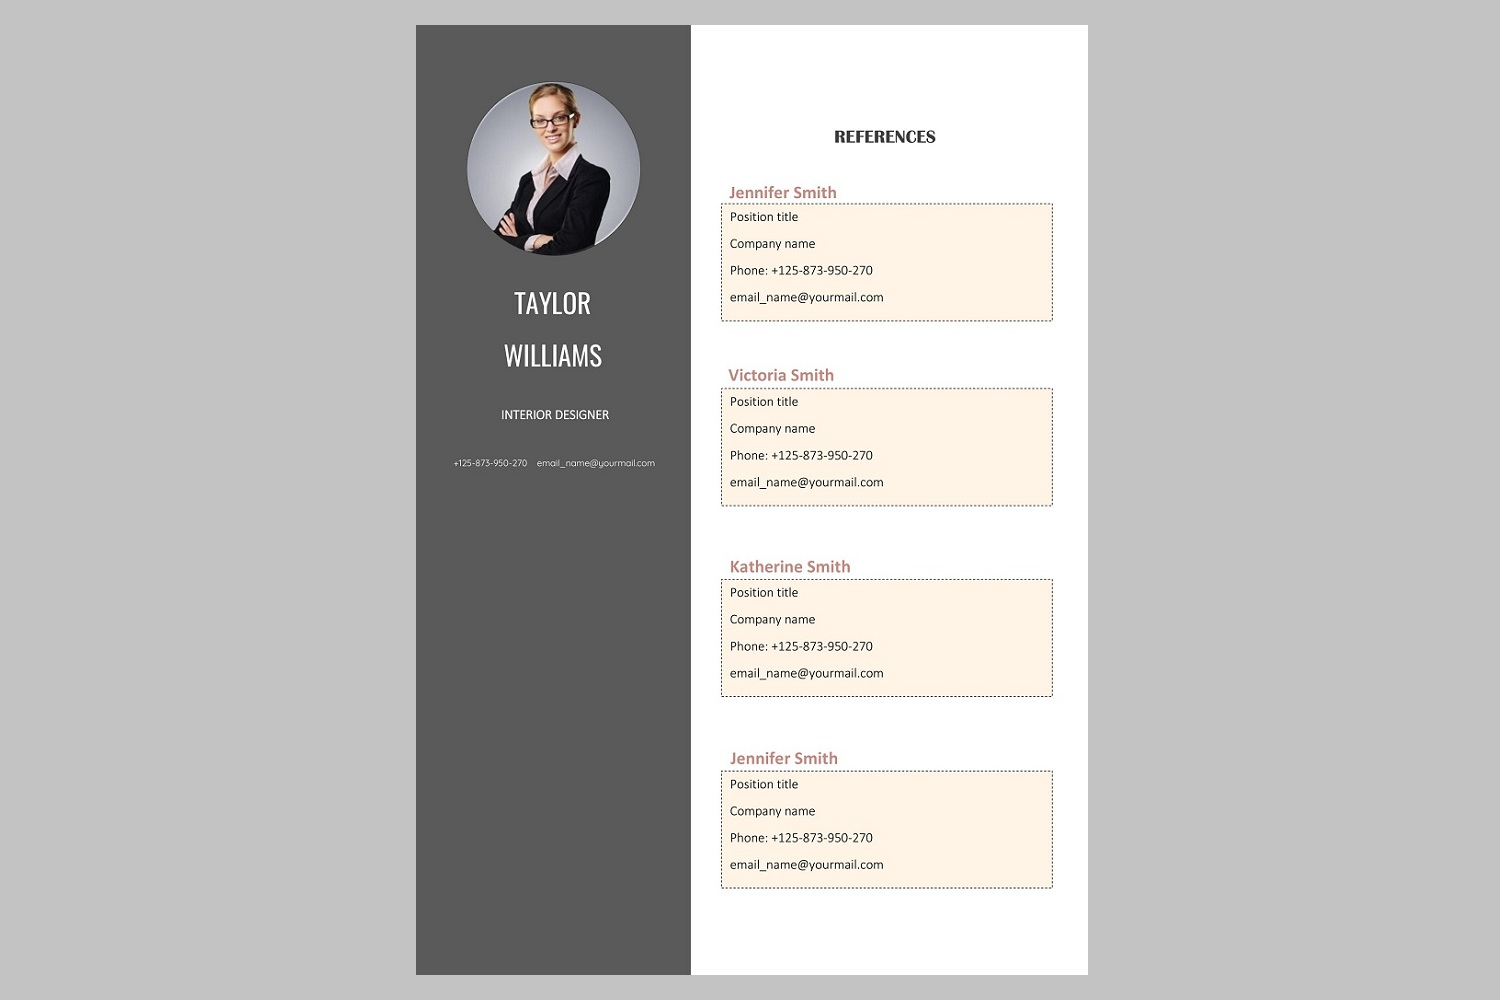 Creative resume template / CV example image 4